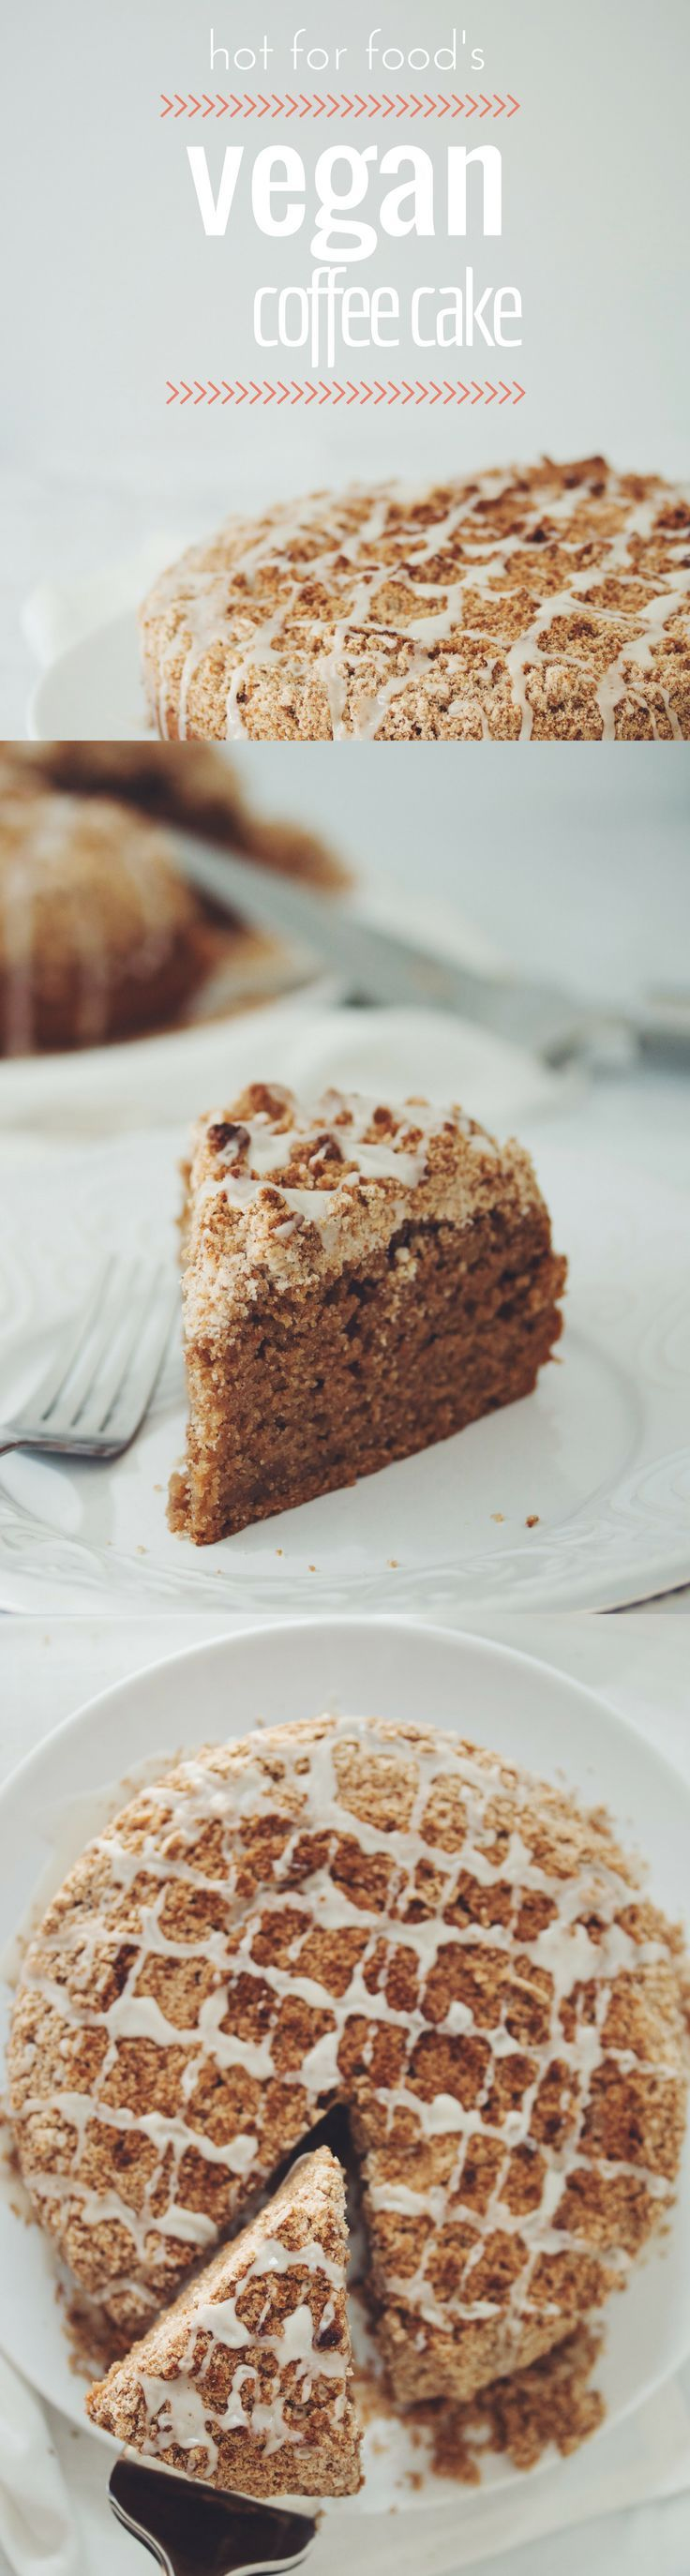 VEGAN COFFEE CAKE | RECIPE on http://hotforfoodblog.com